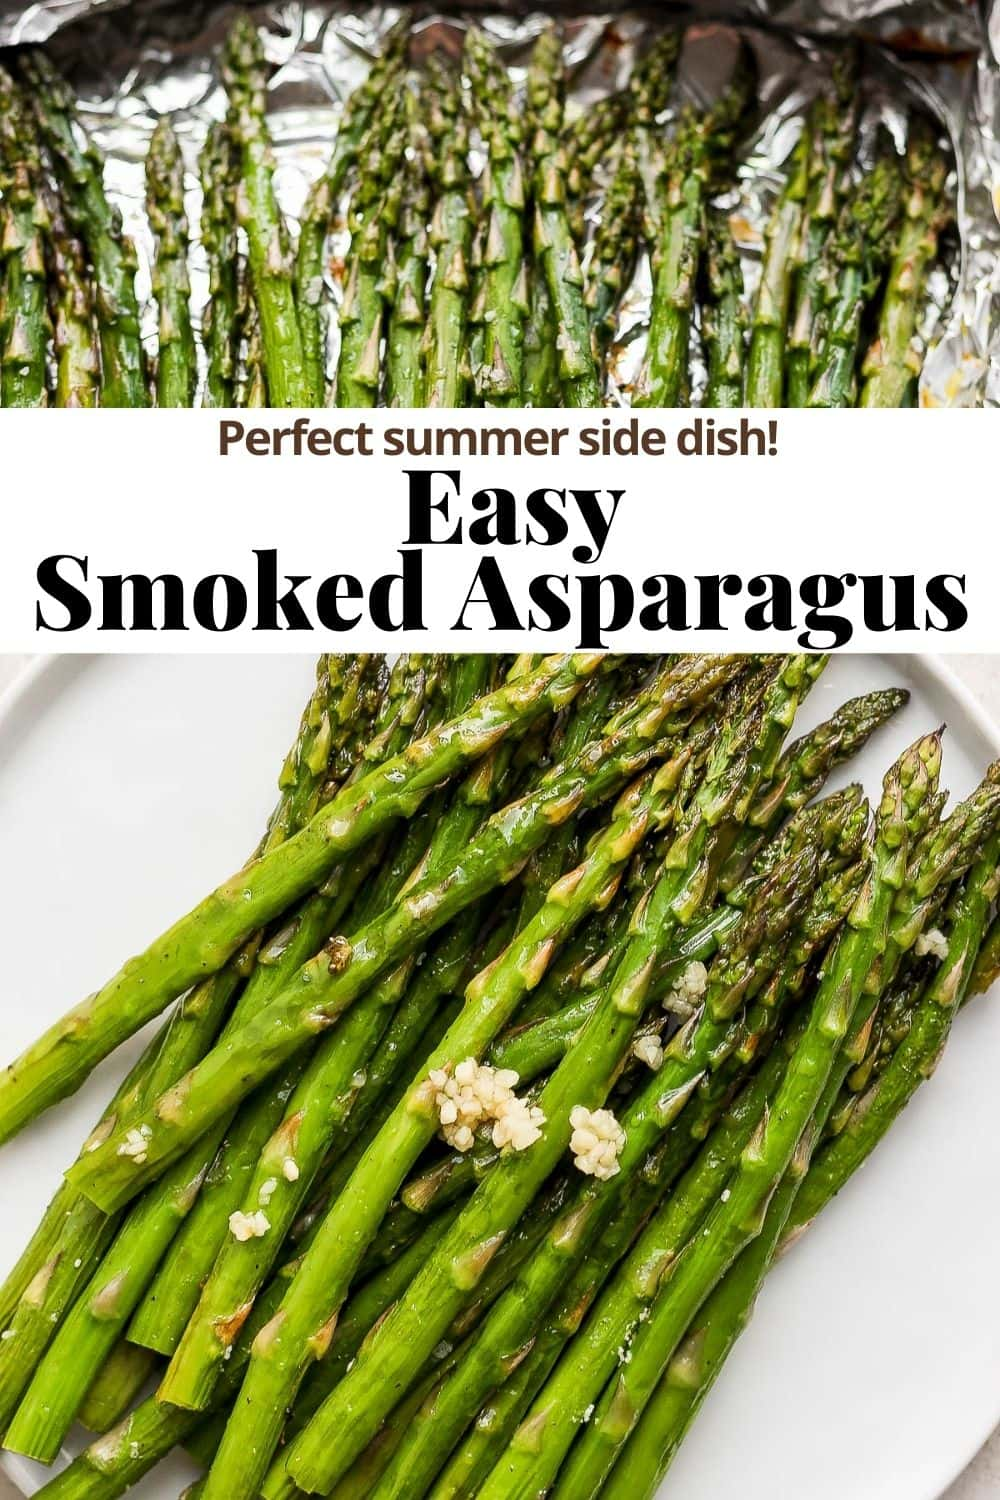 Pinterest image for smoked asparagus.